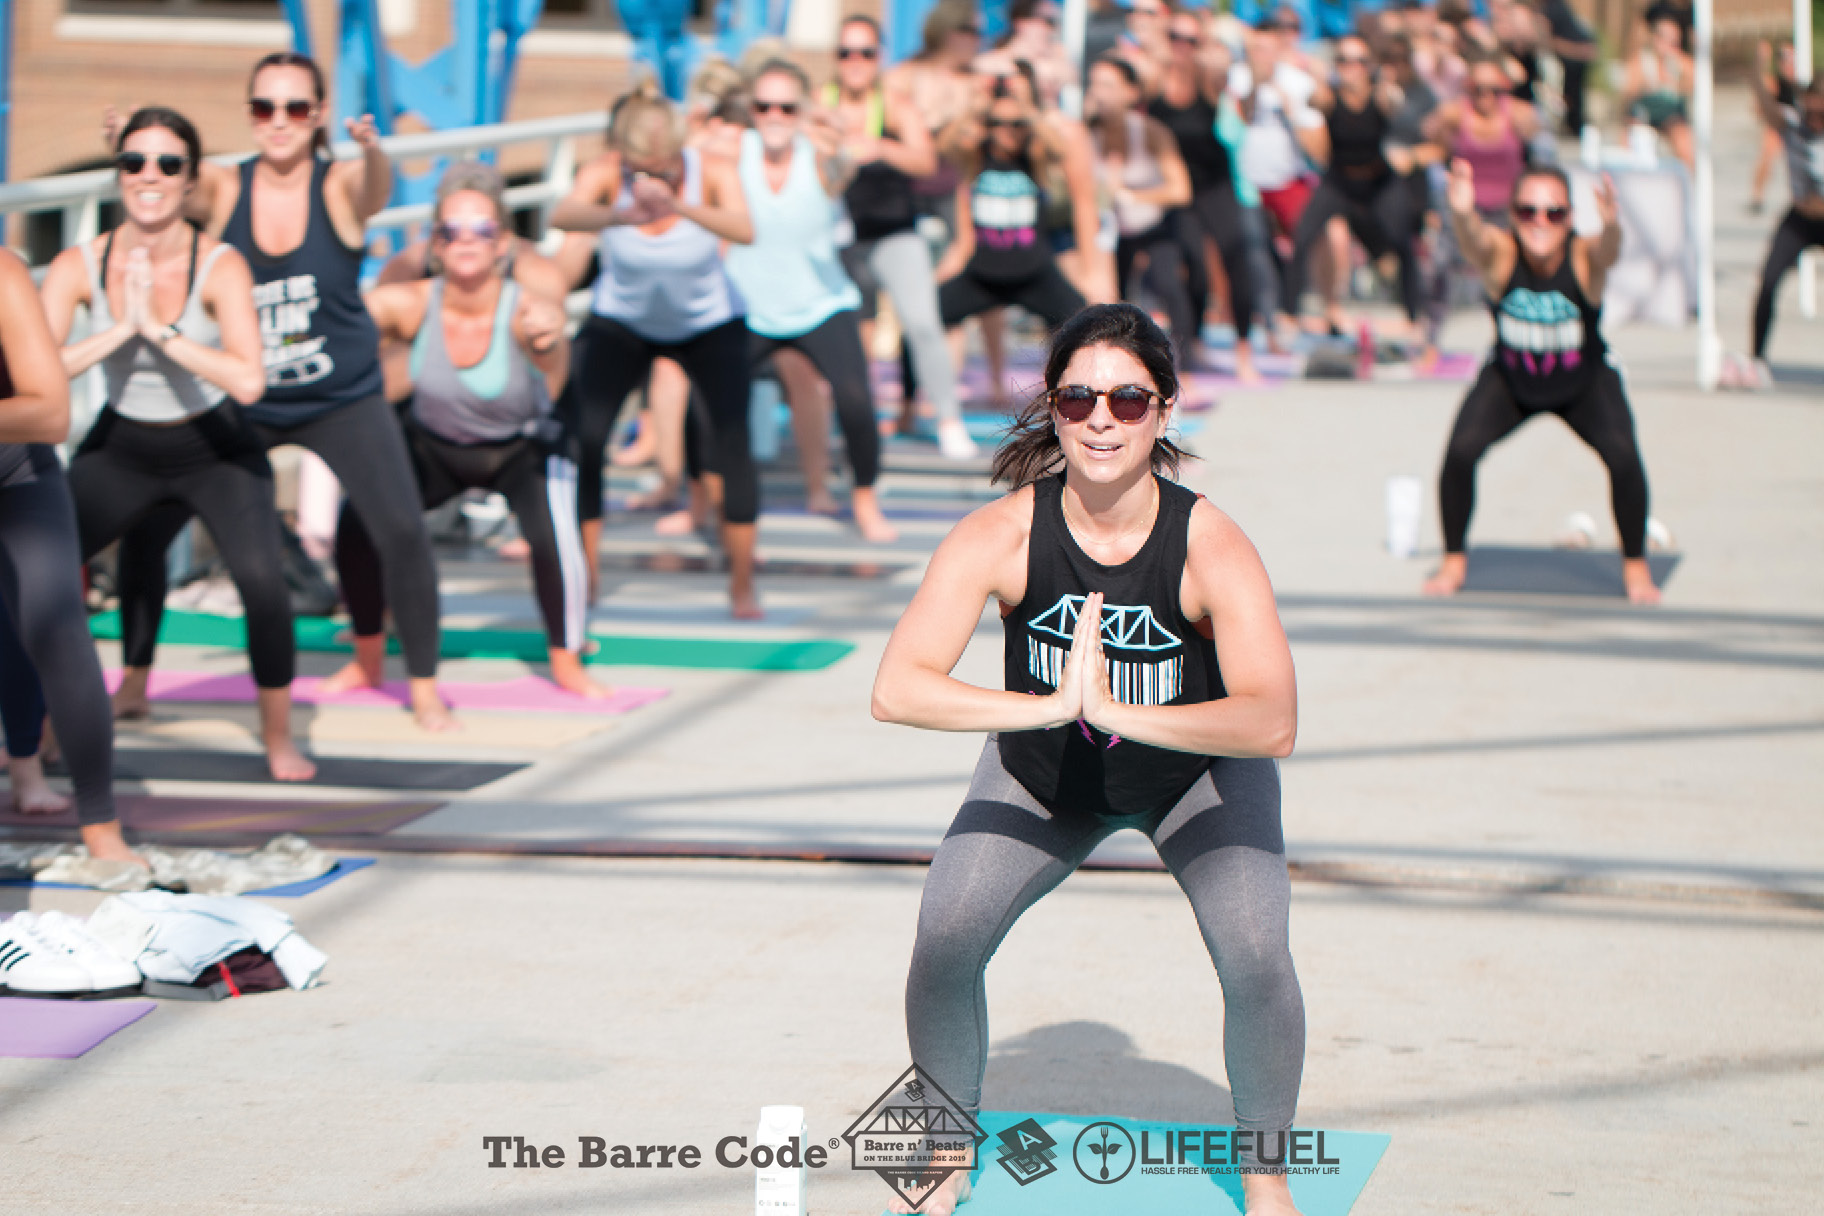 190805_the_barre_code_lifefuel_30.jpg